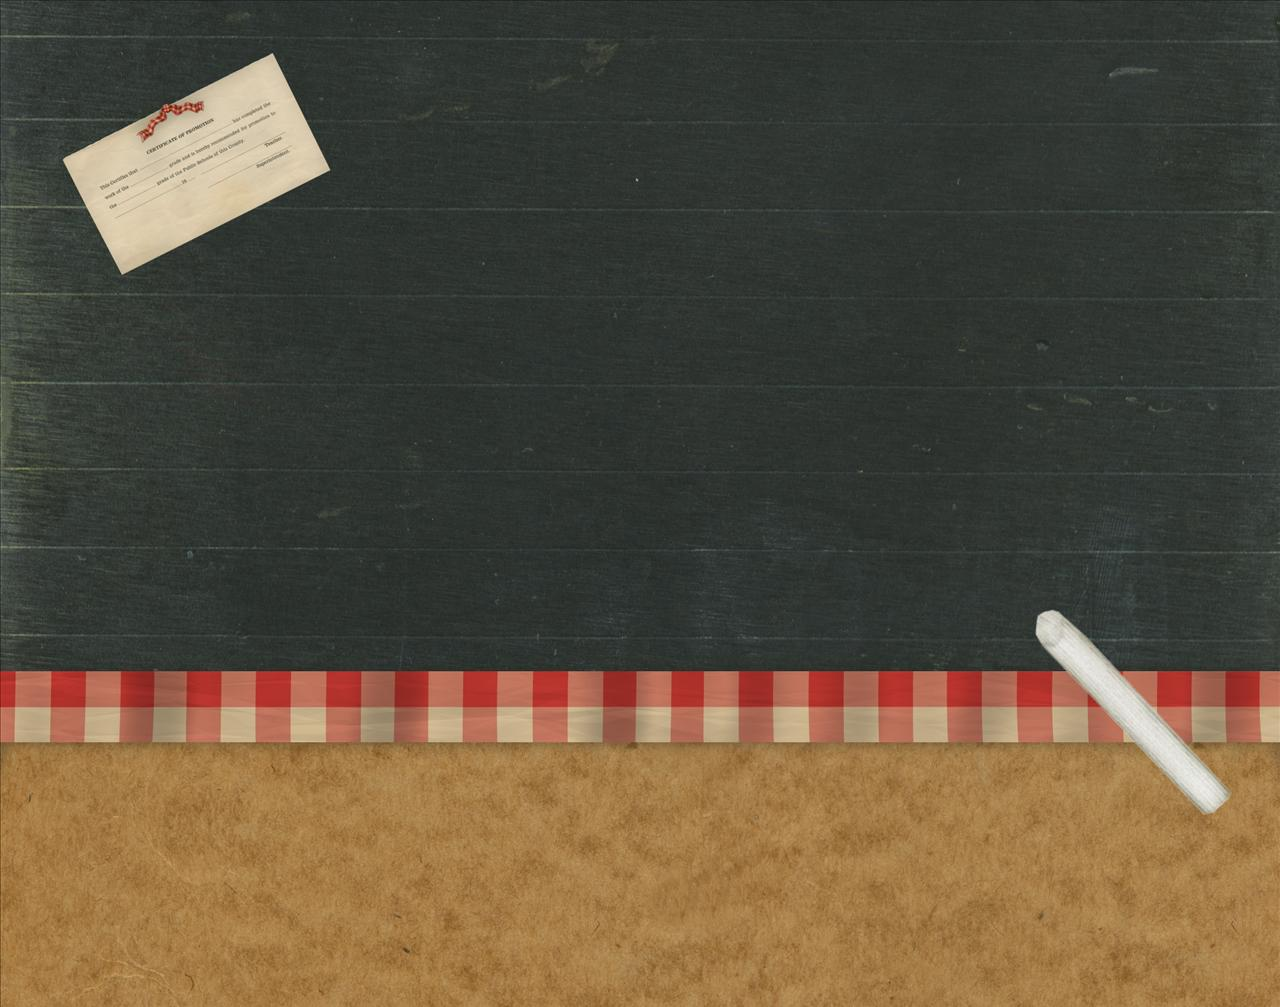 Elementary School For PowerPoint Education Wallpaper Backgrounds for ...